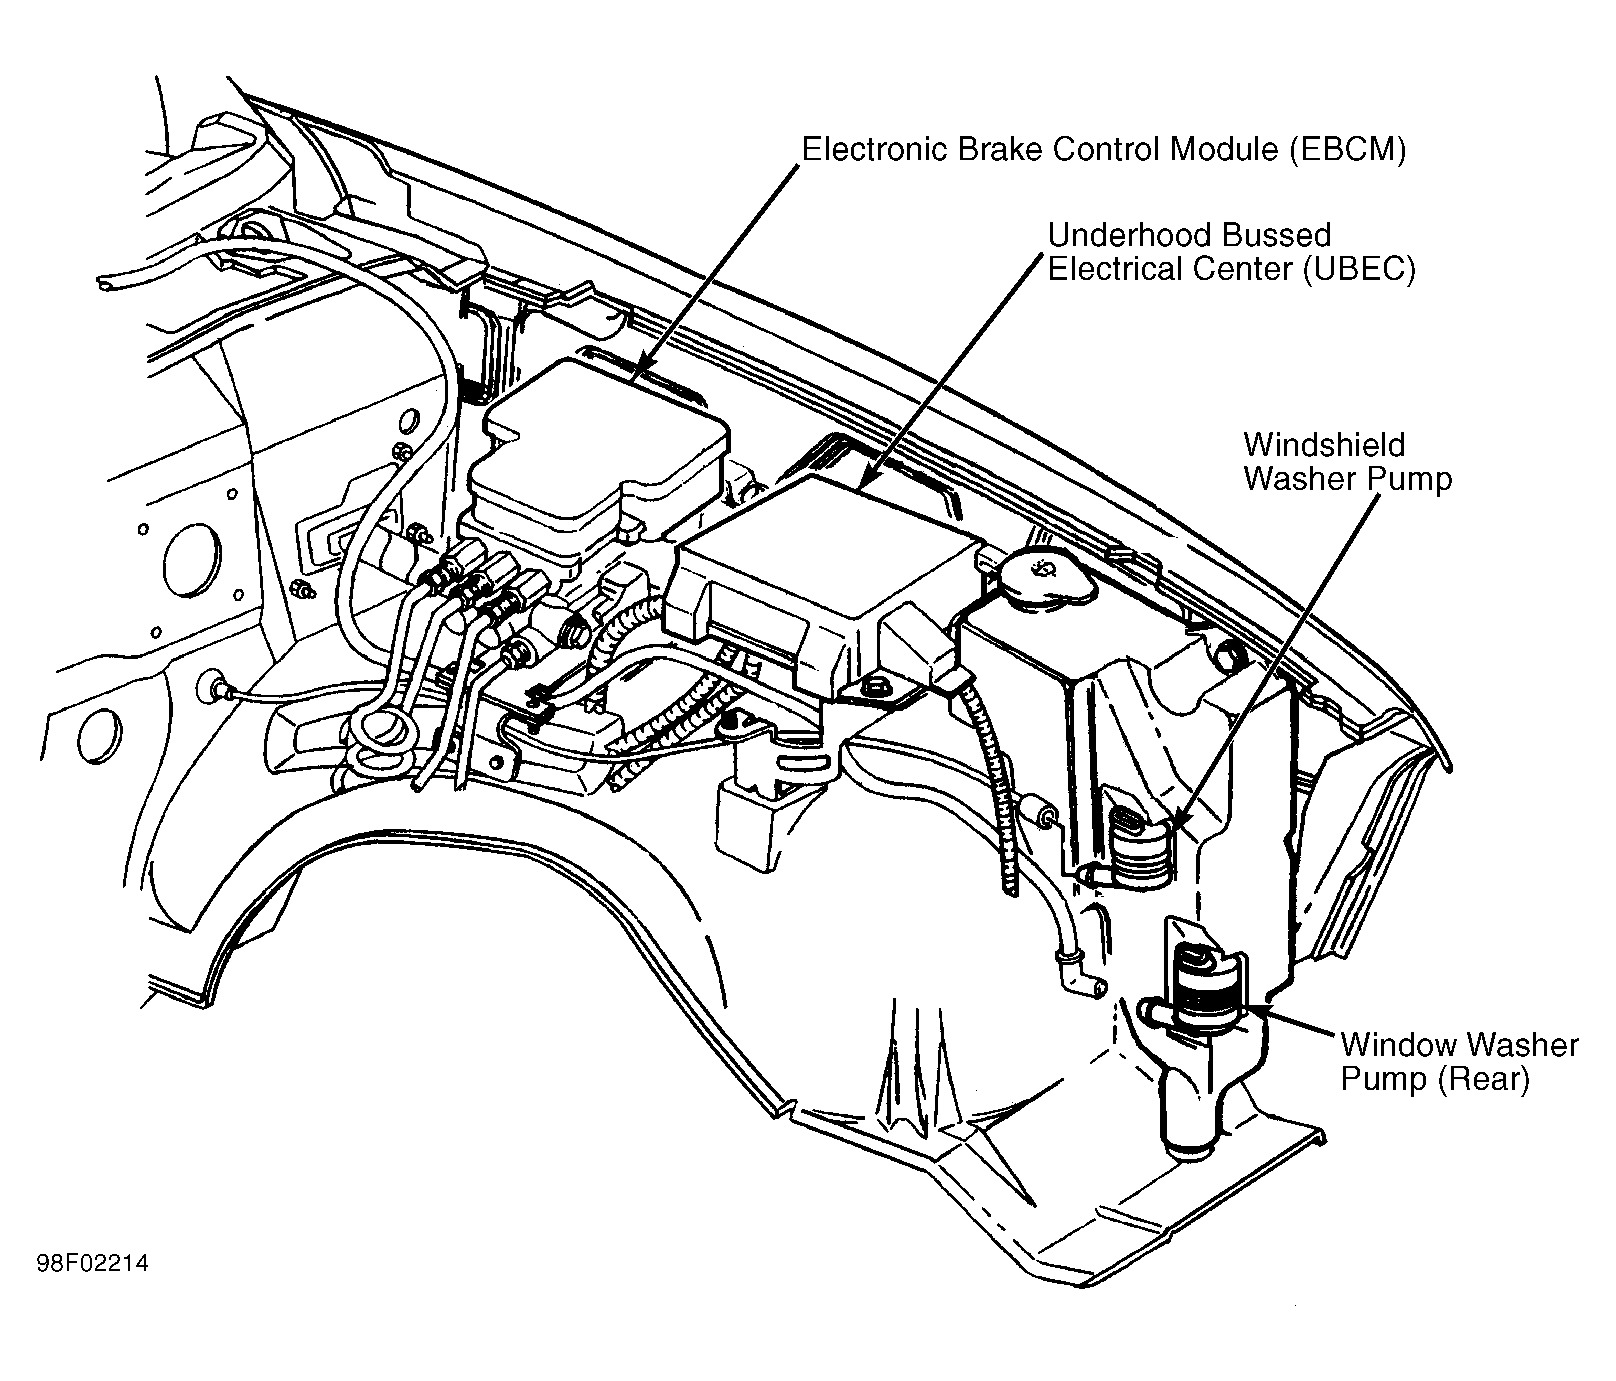 [WRG-4500] 2001 Gmc Jimmy Fuel Pump Wiring Diagram